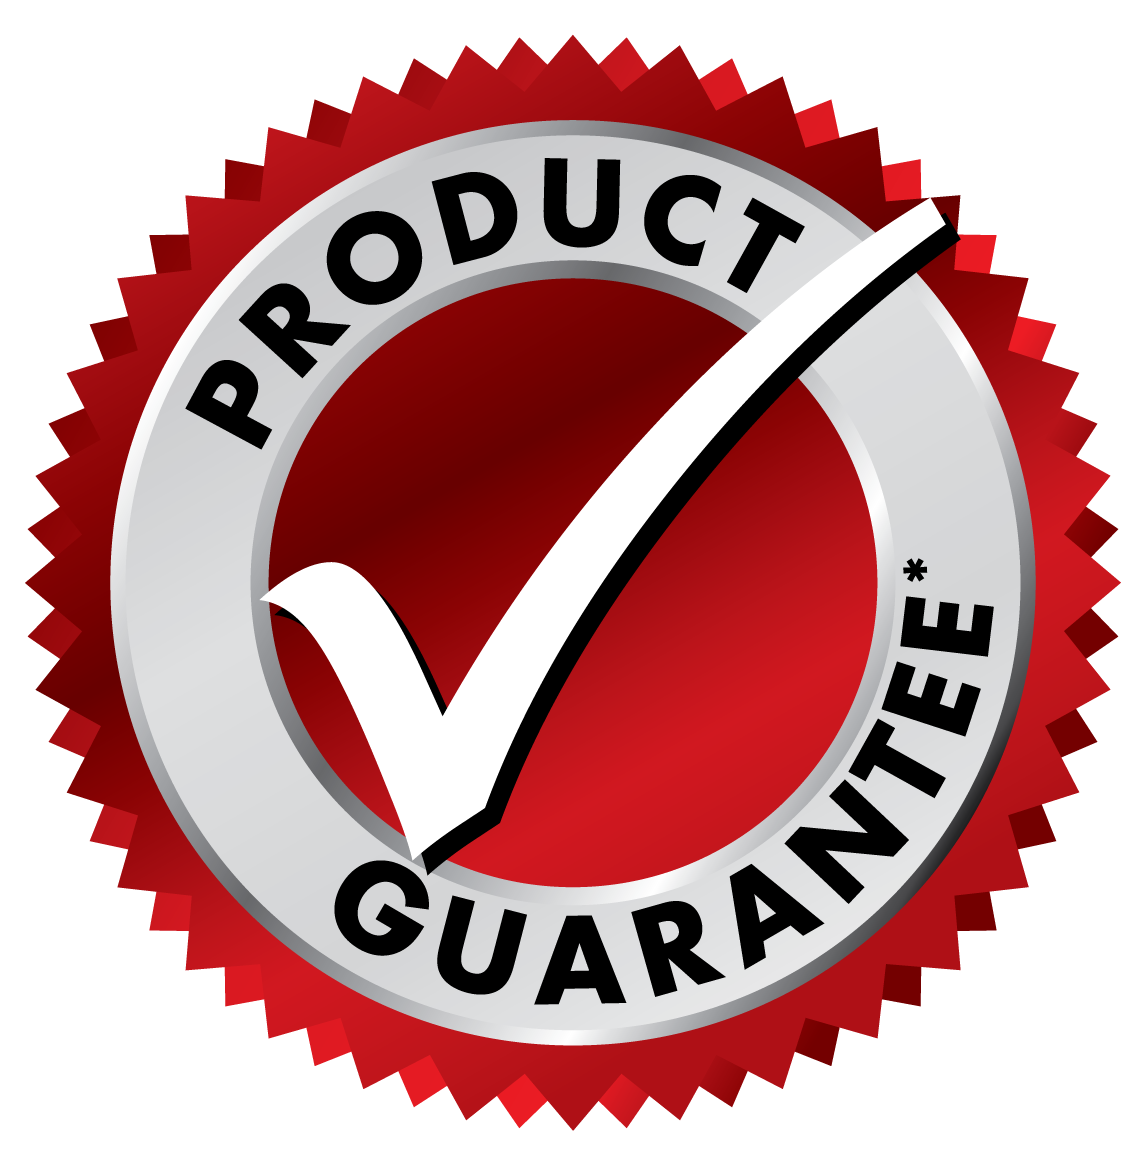 Product Guarantee USA